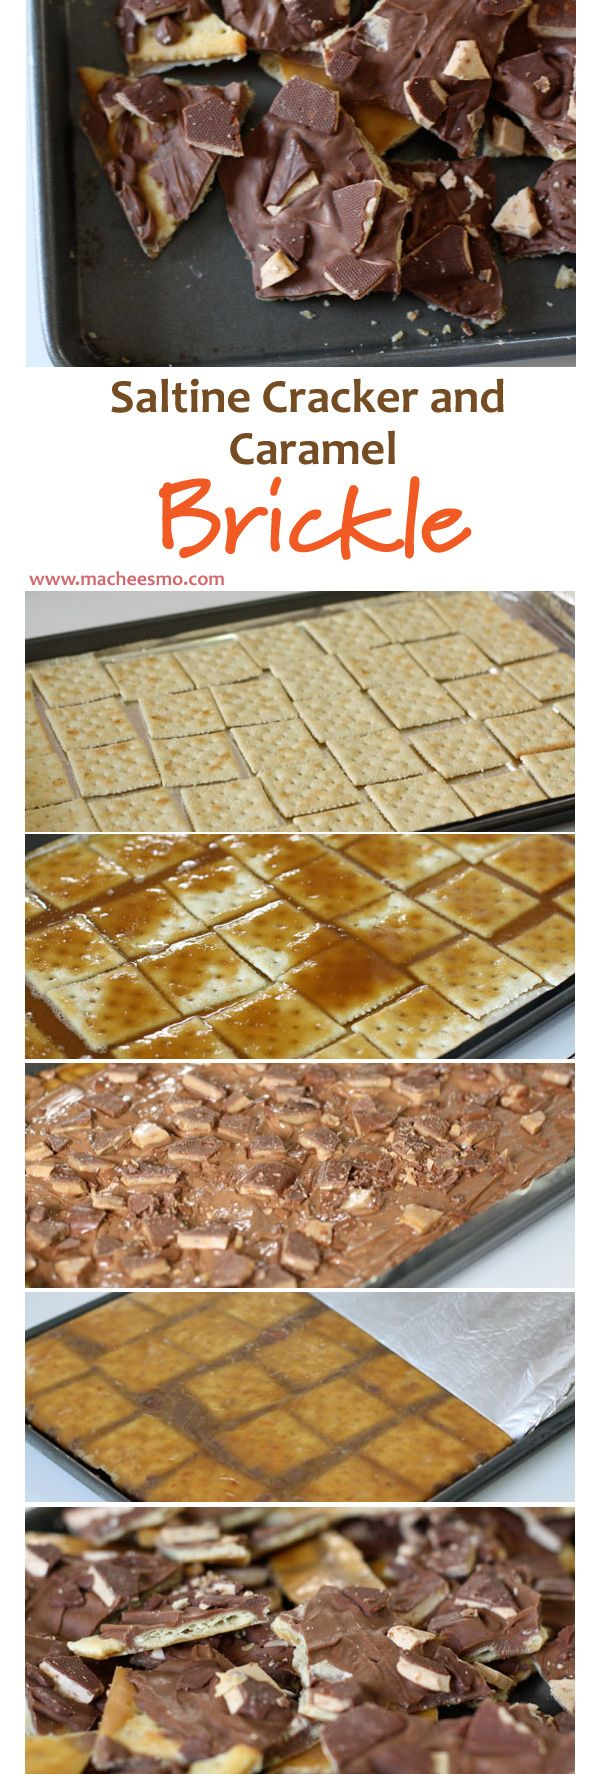 This cracker and caramel chocolate brickle is probably the most addictive sweet snack I know how to make. It only has a few ingredients but be sure to check out the post to learn a few tricks on assembly!